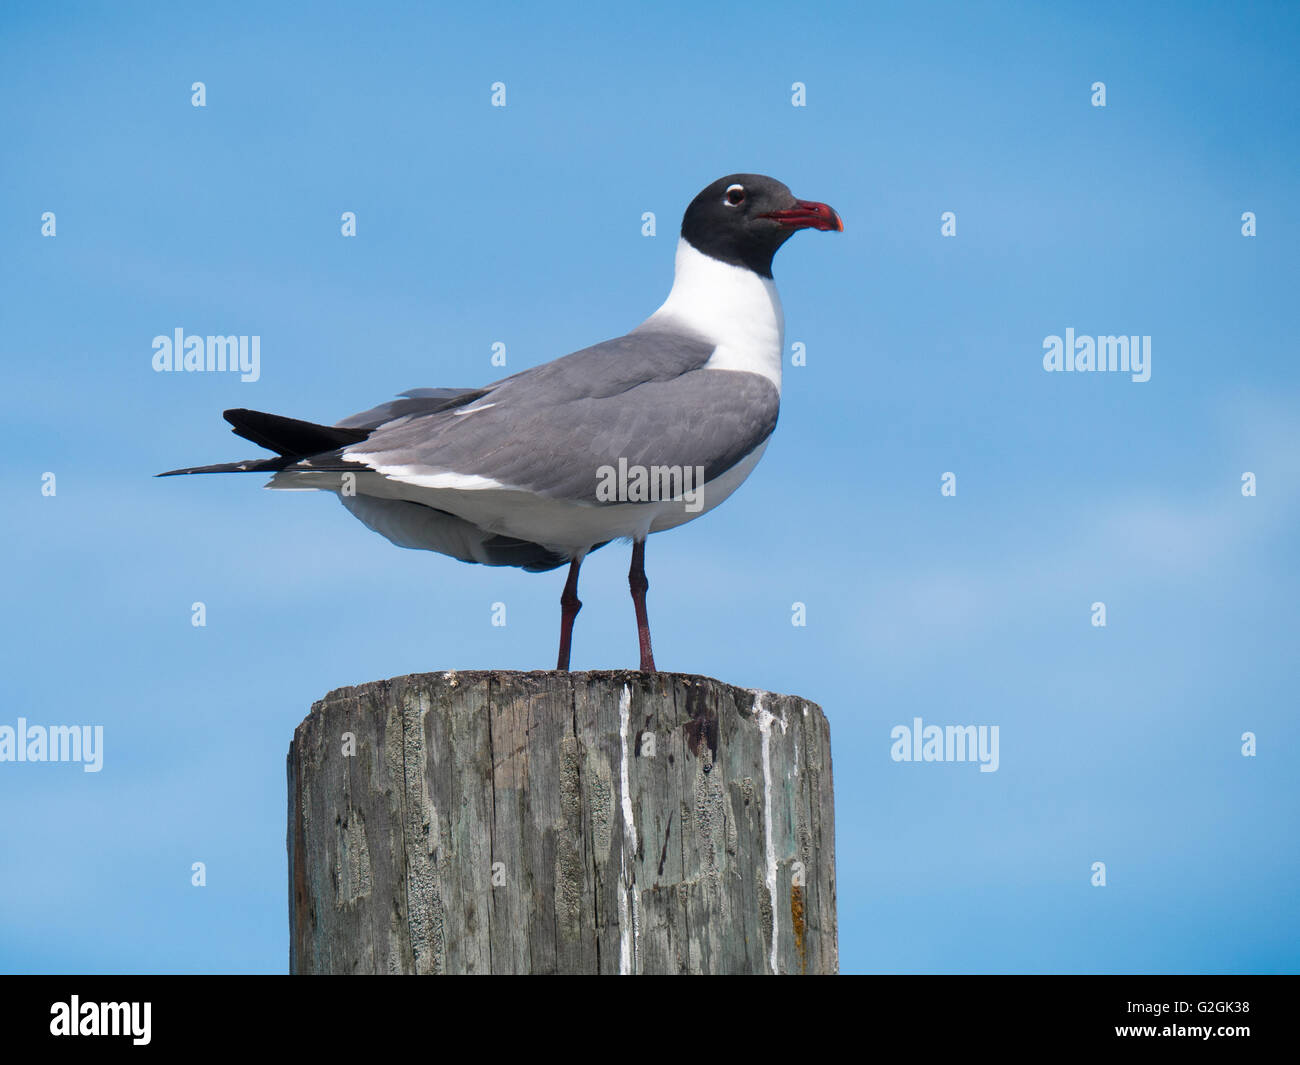 Gull observing from a pole - Stock Image